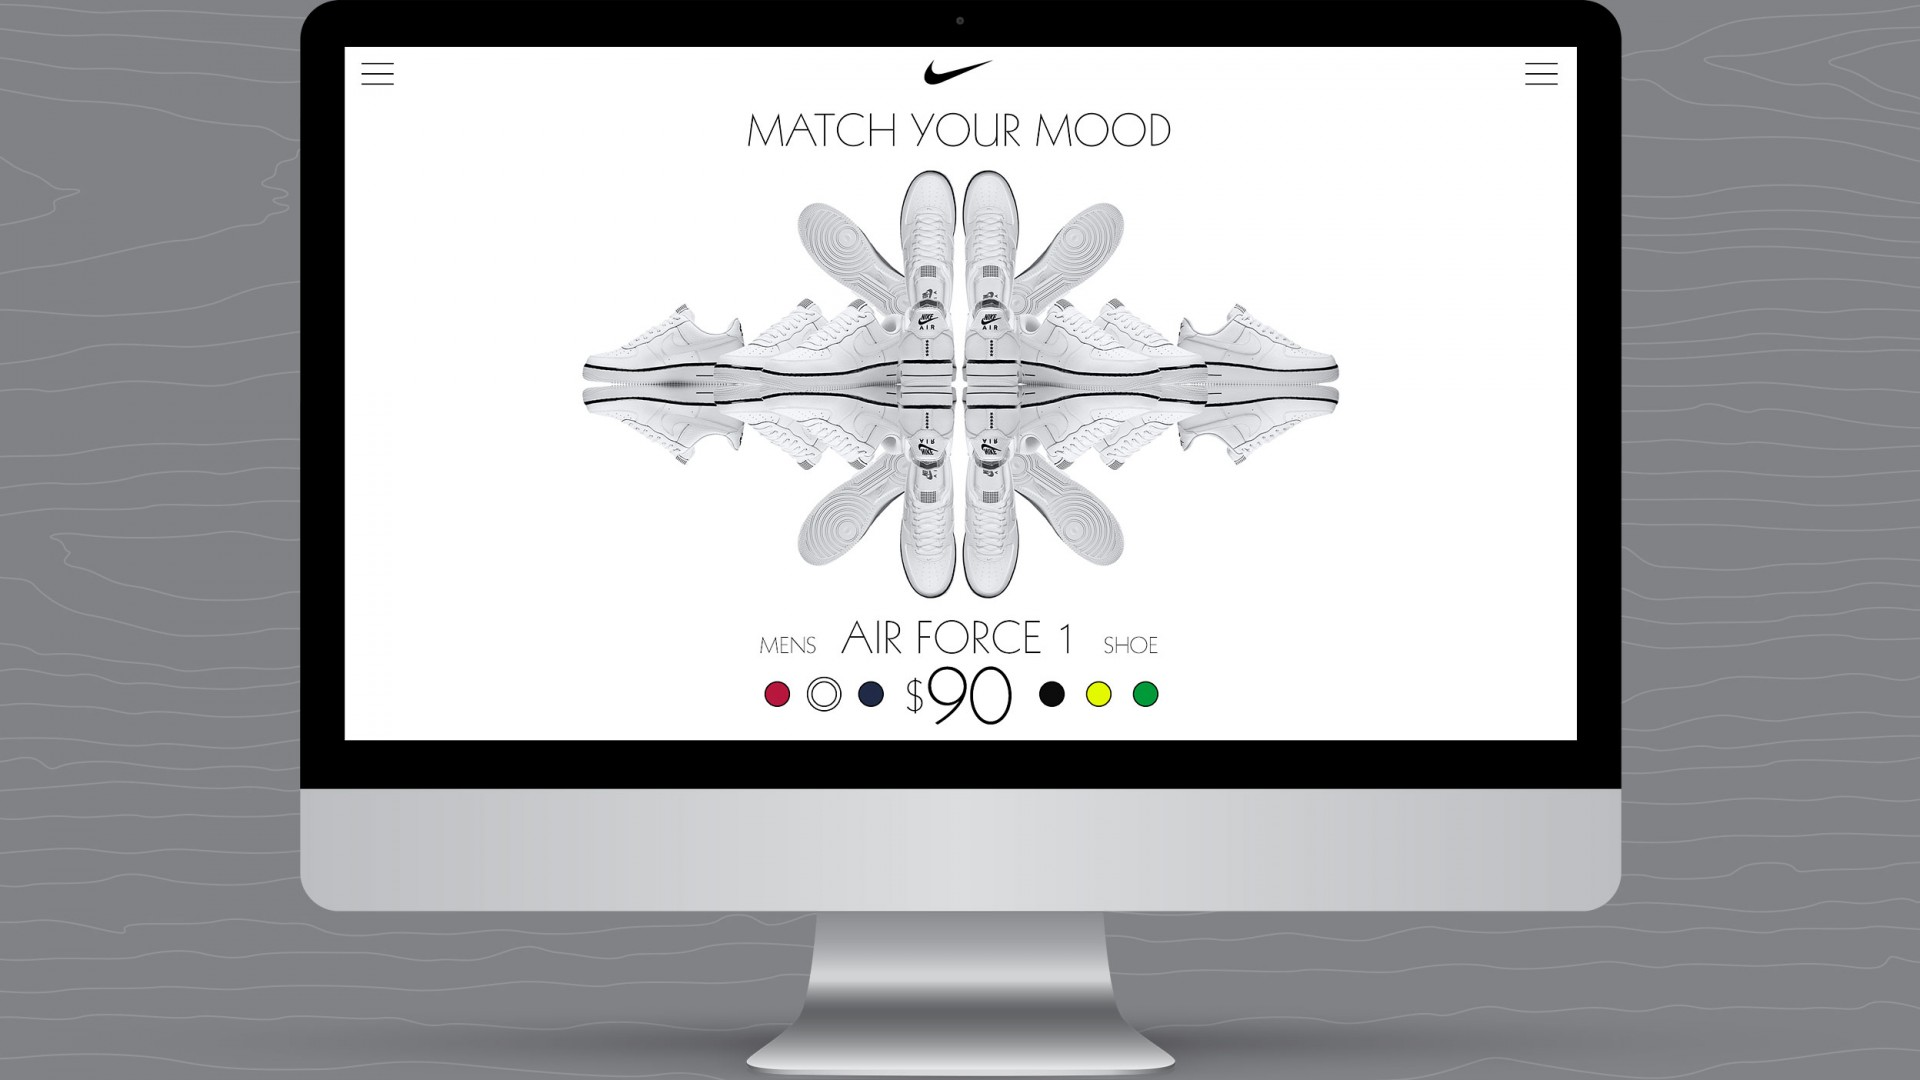 Match Your Mood, Nike UX/UI, desktop view white shoe view.